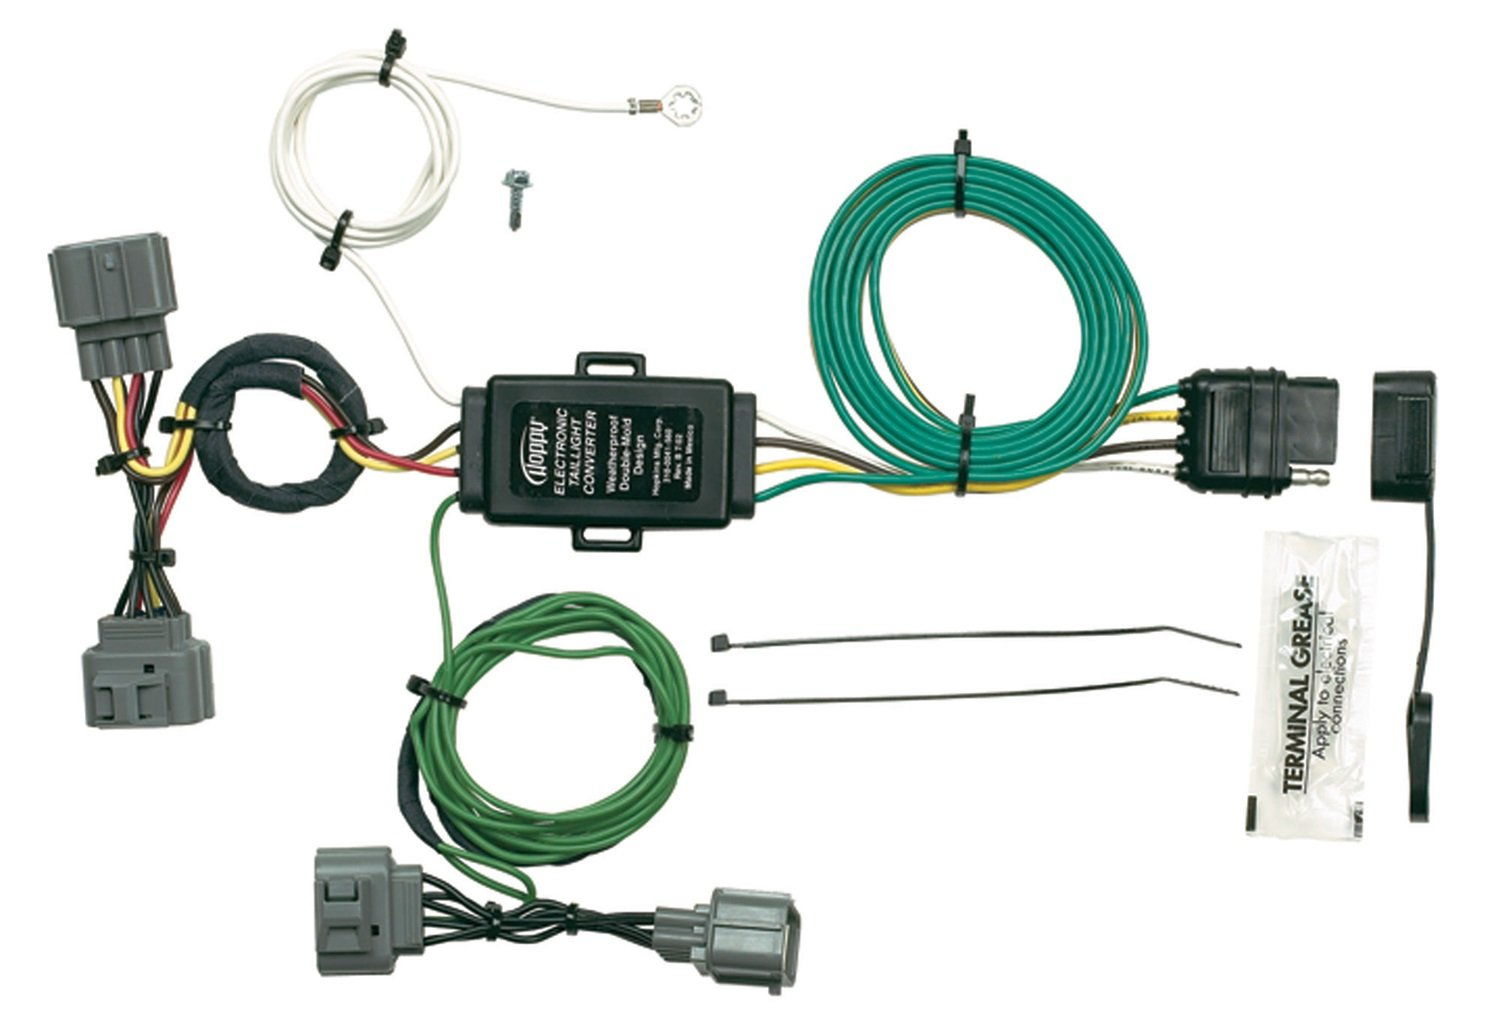 Lovely How To Wire Ssr Tall Fender S1 Switch Wiring Diagram Rectangular 5 Way Import Switch Wiring 2 Wire Humbucker Young 3 Way Switch Guitar GrayWiring Diagram For Gas Furnace Amazon.com: Hopkins 43125 Plug In Simple Vehicle Wiring Kit ..